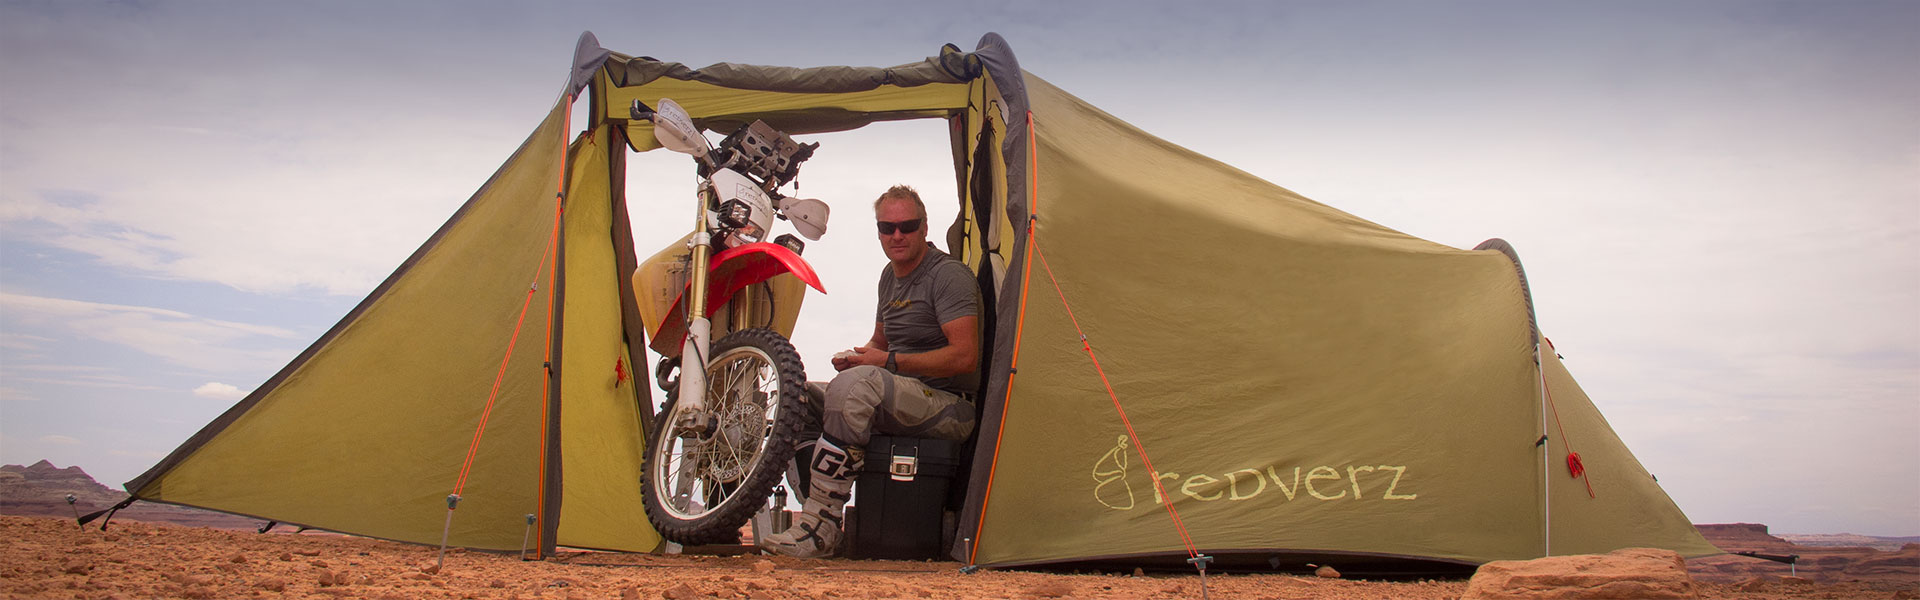 Redverz Gear's Original Mototent, Motorcycle Campingand motorcycle tents